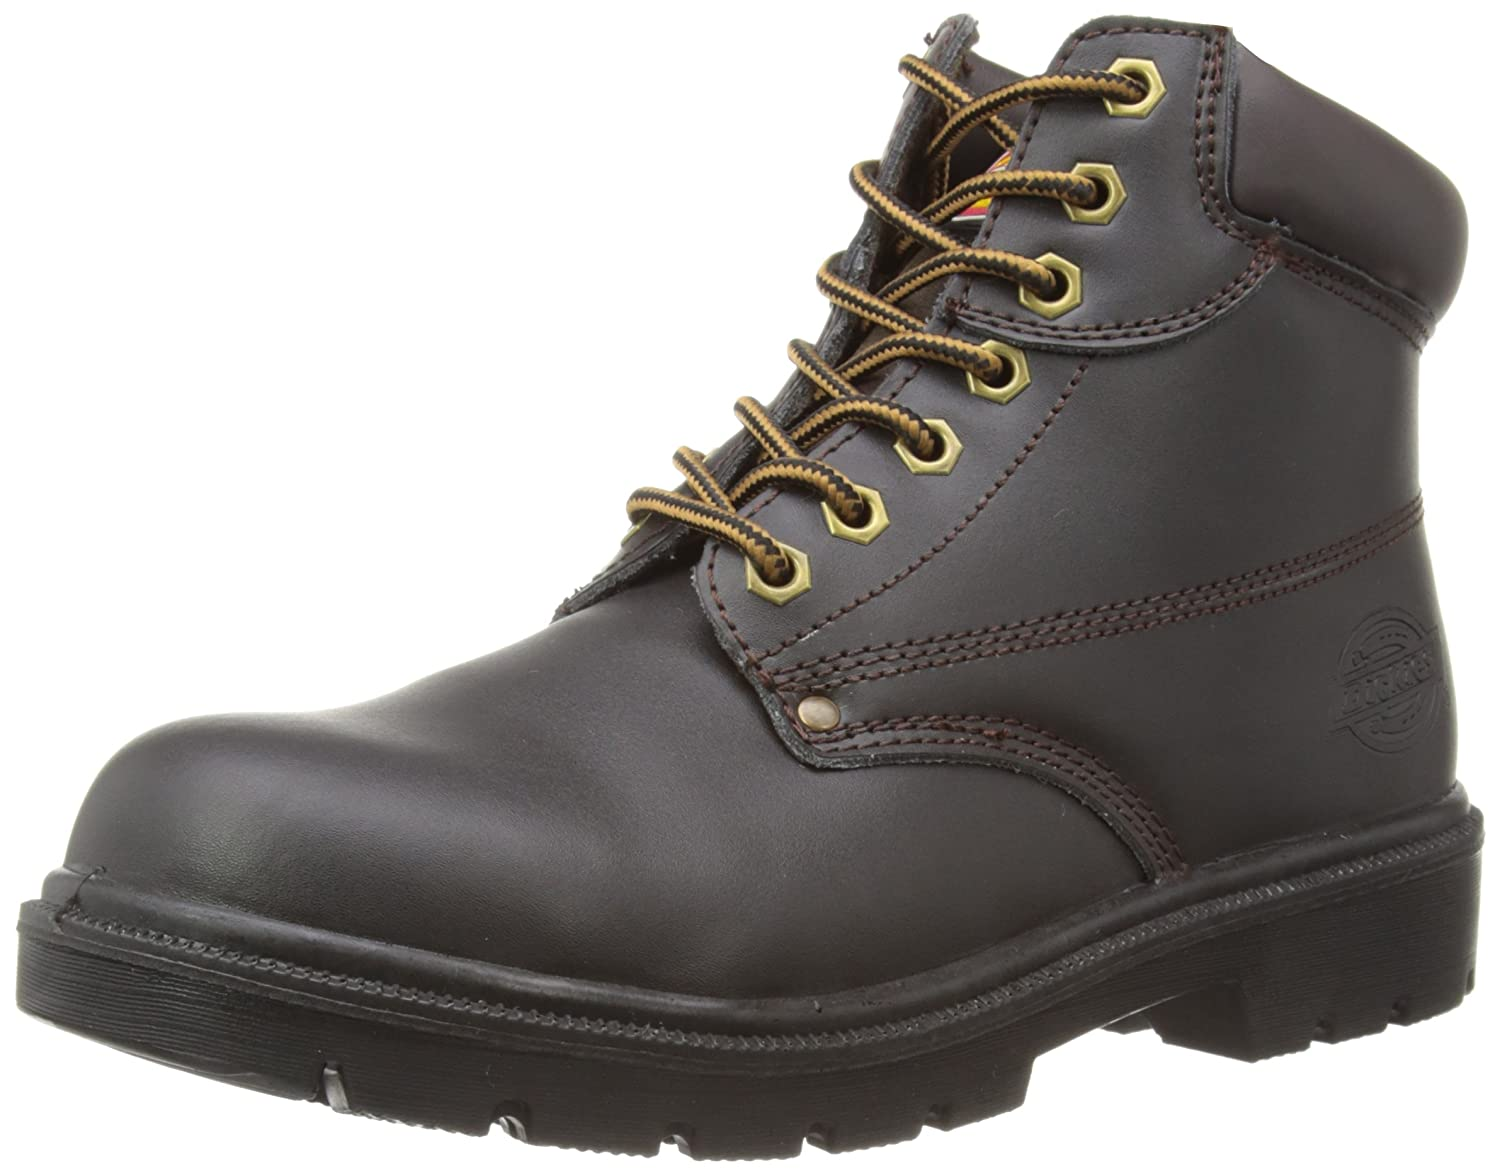 Dickies FA23333 BR 5+ Antrim S1-P Safety Work Boots, Brown, Size 5.5 FA23333 BR 5+